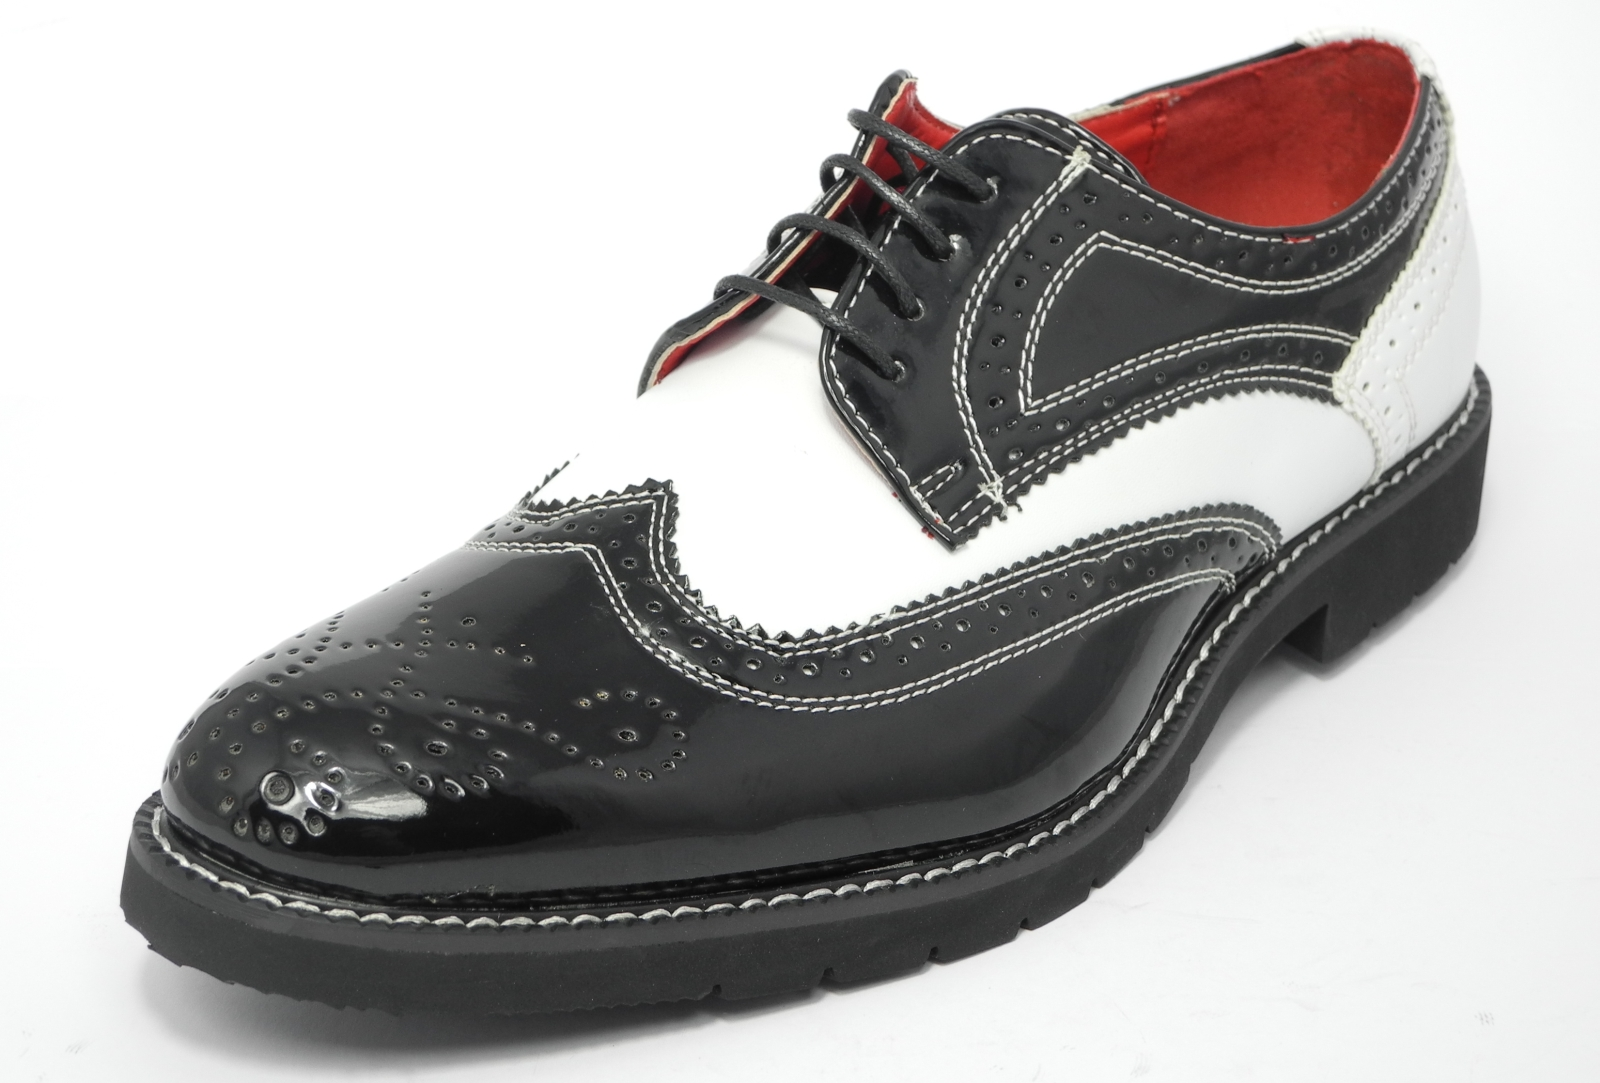 mens patent shiny leather look spats brogues gatsby shoes